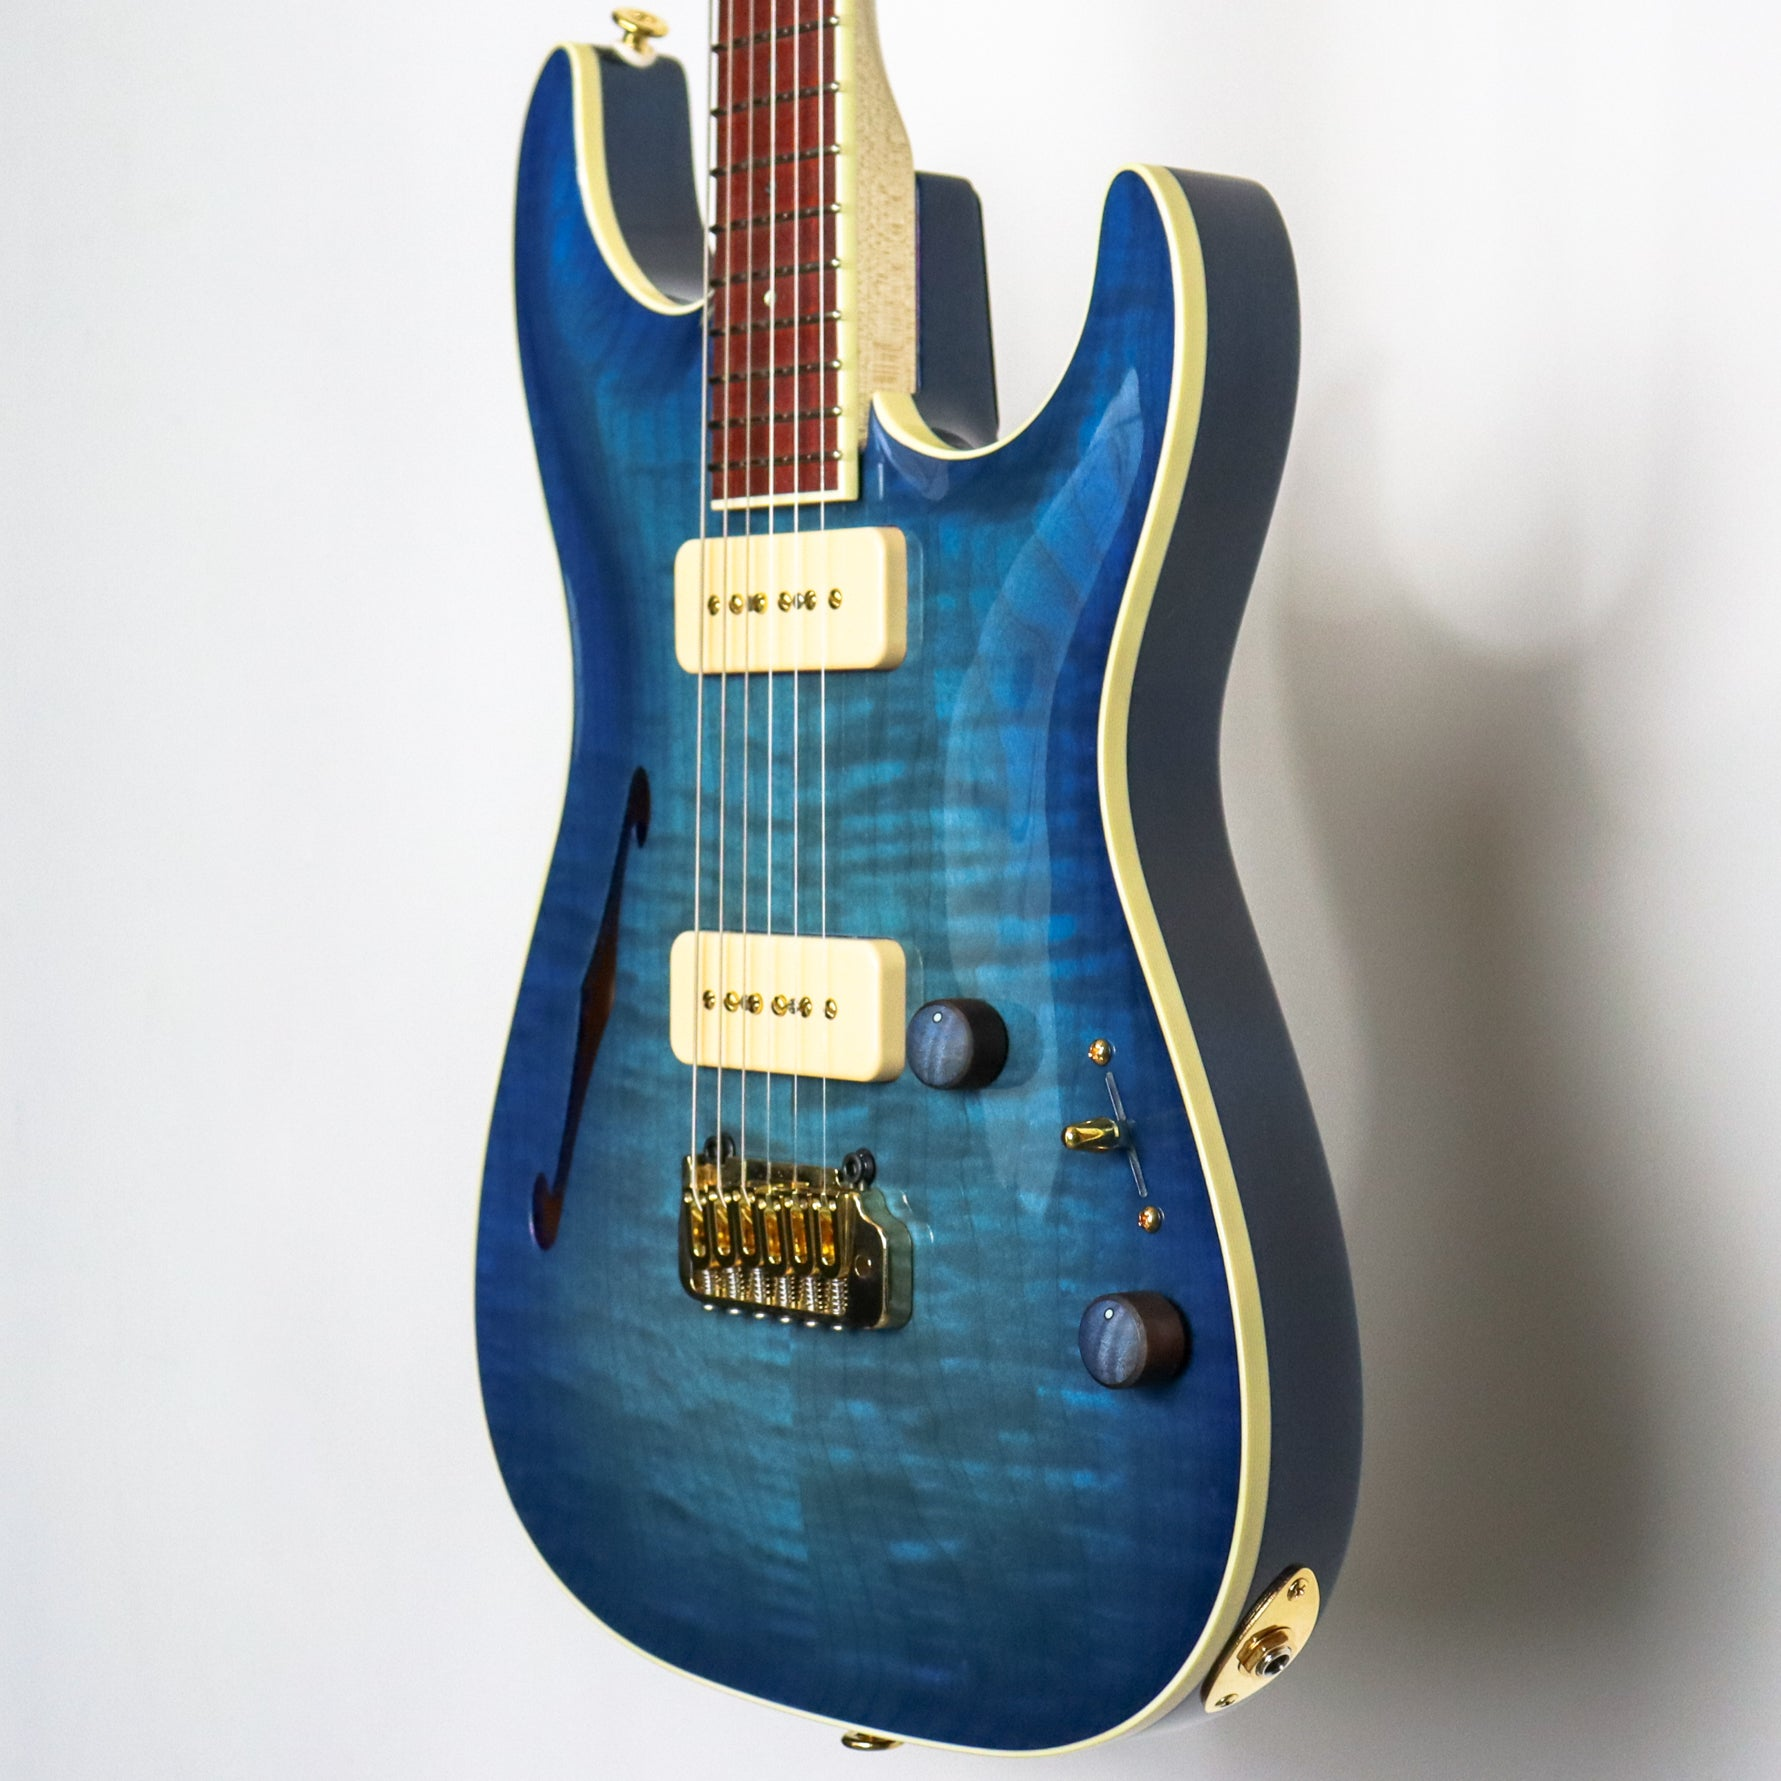 Pensa MK-1 Plus 0889 Chinery Blue, F hole, Flame Maple knobs